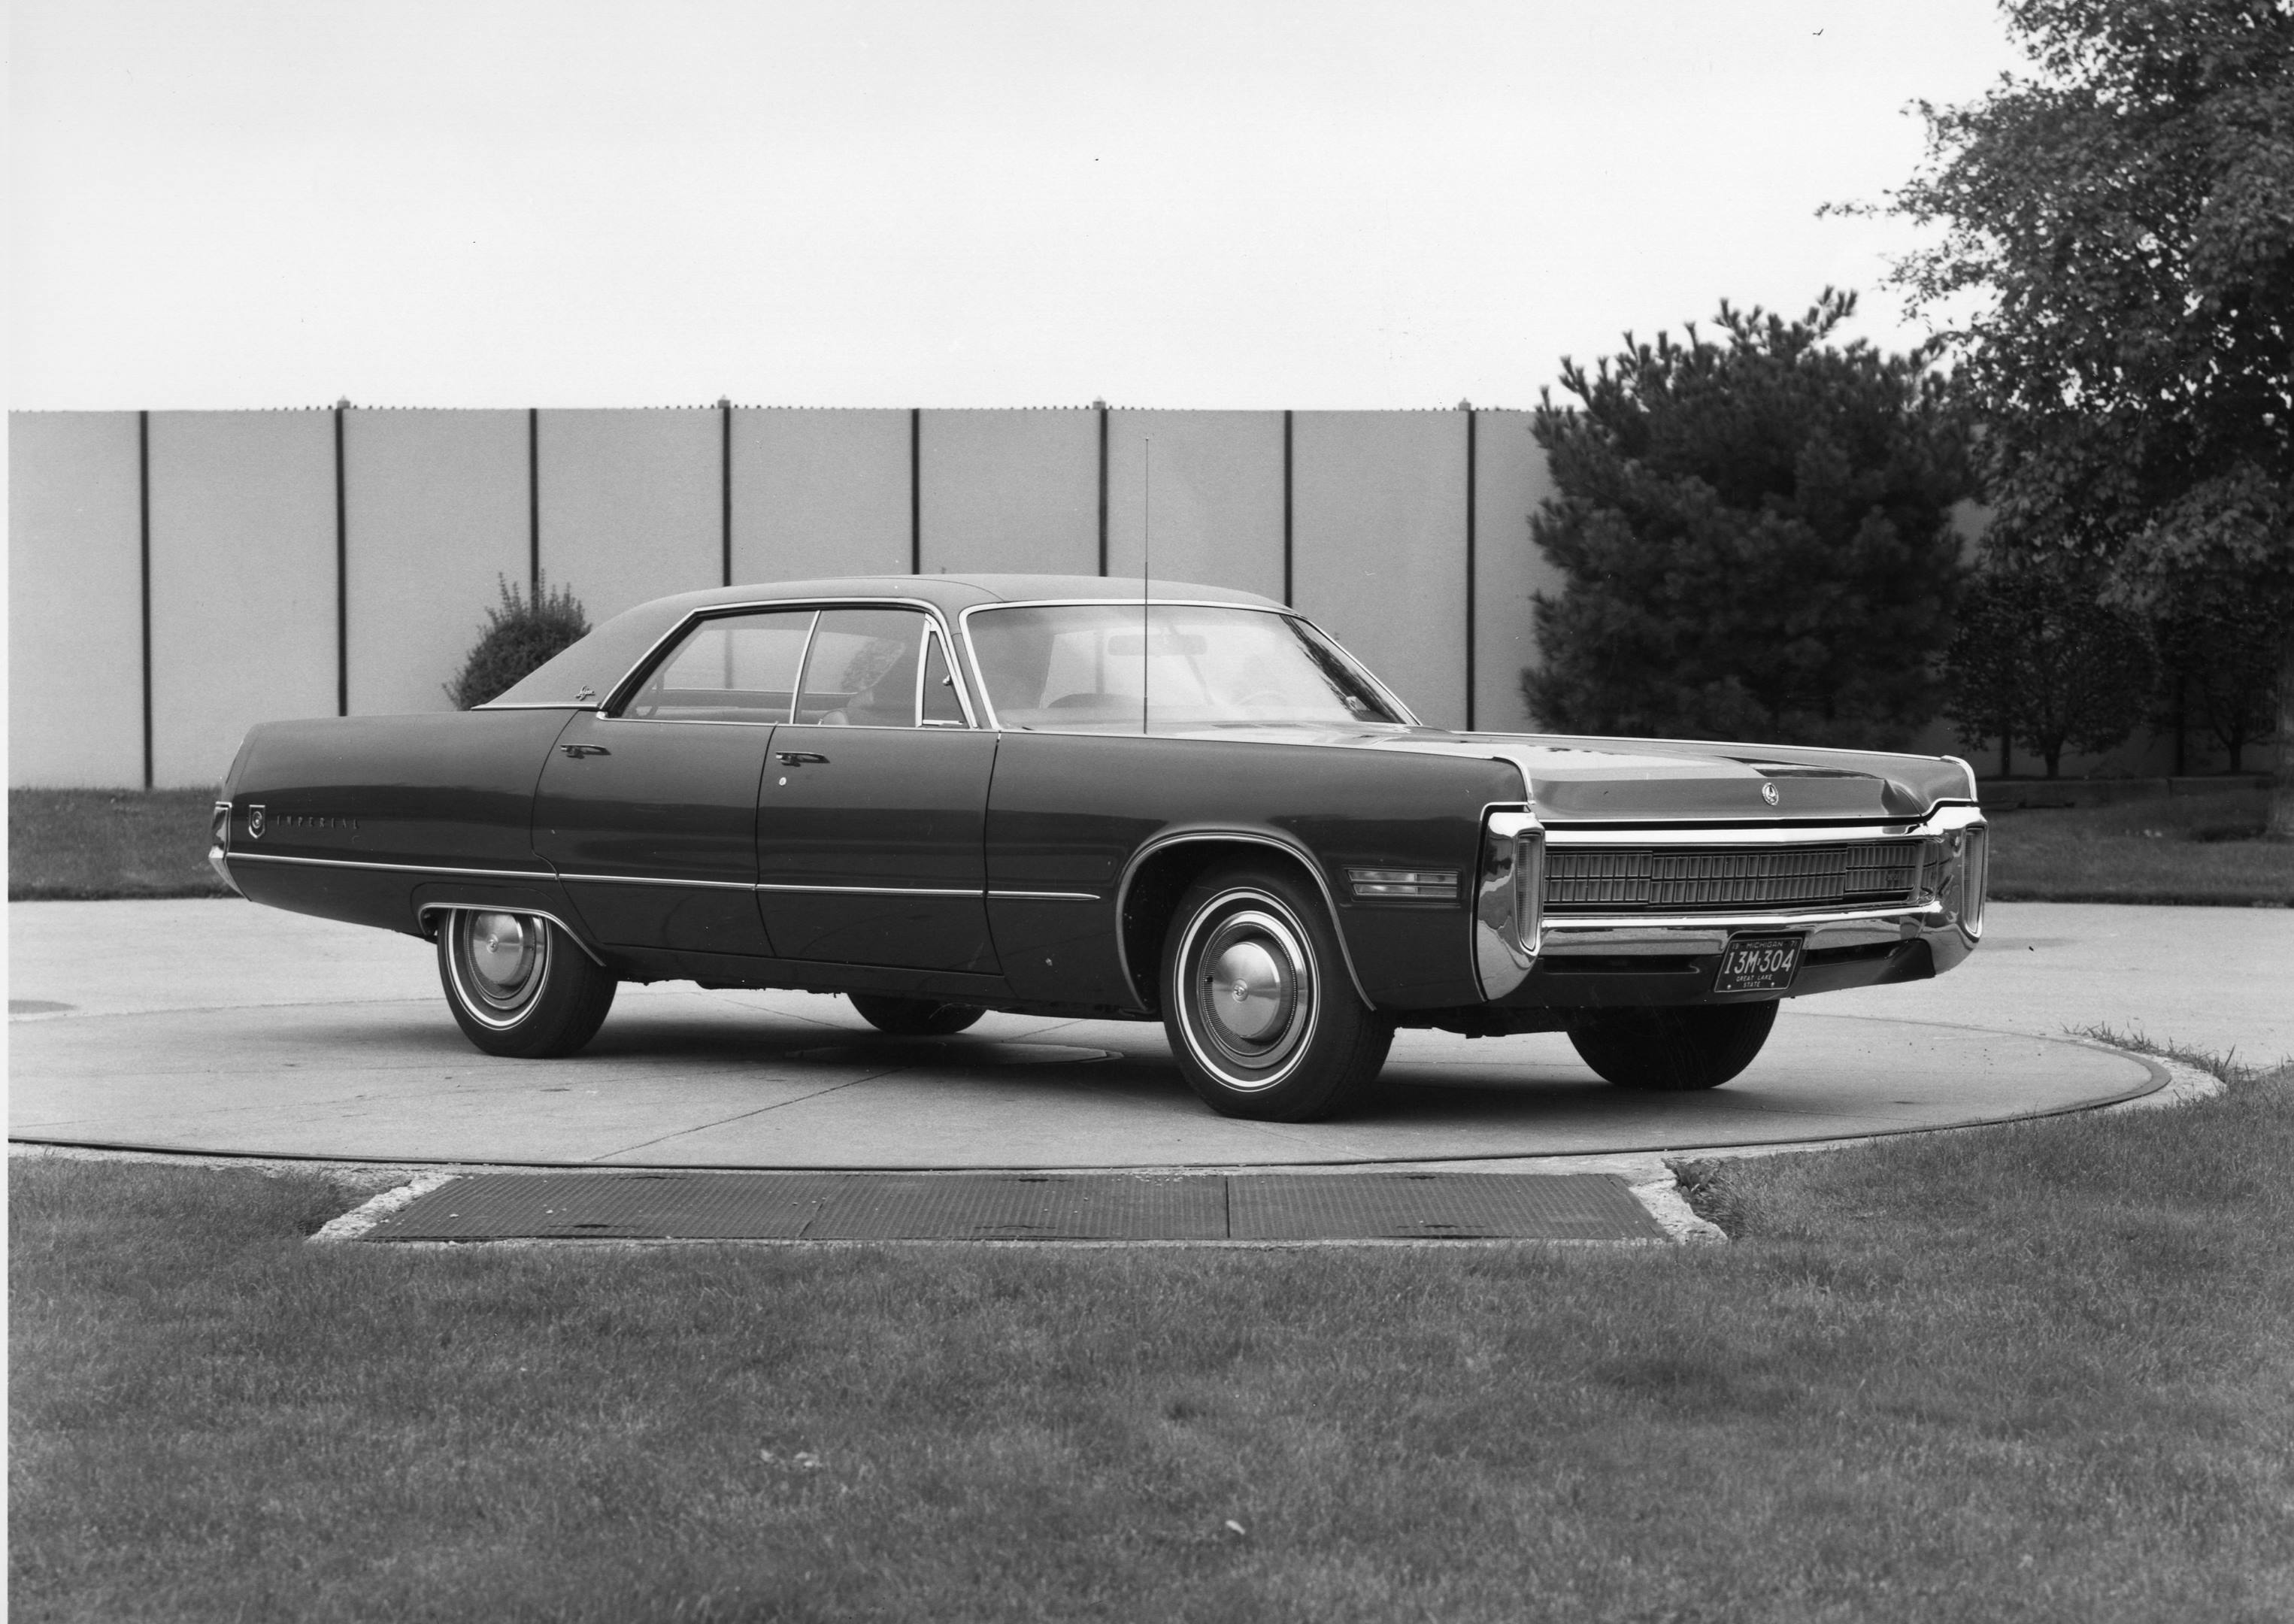 black and white photo of 1972 Chrysler Imperial